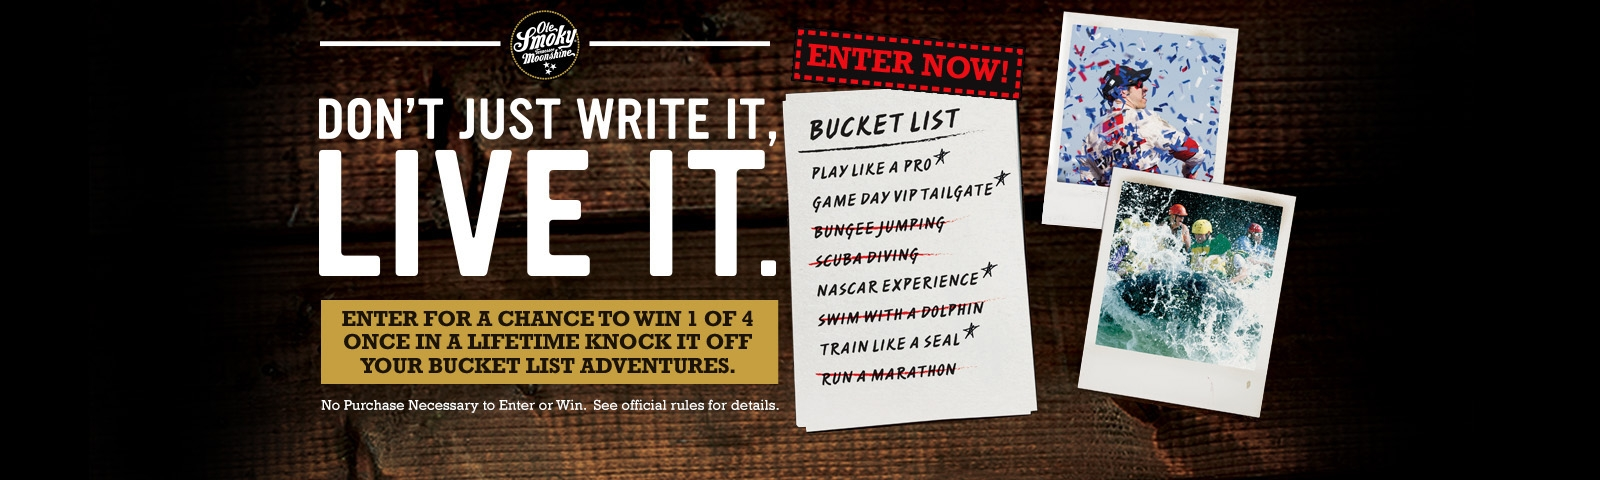 OLE SMOKY KNOCK IT OFF YOUR BUCKET LIST SWEEPSTAKES